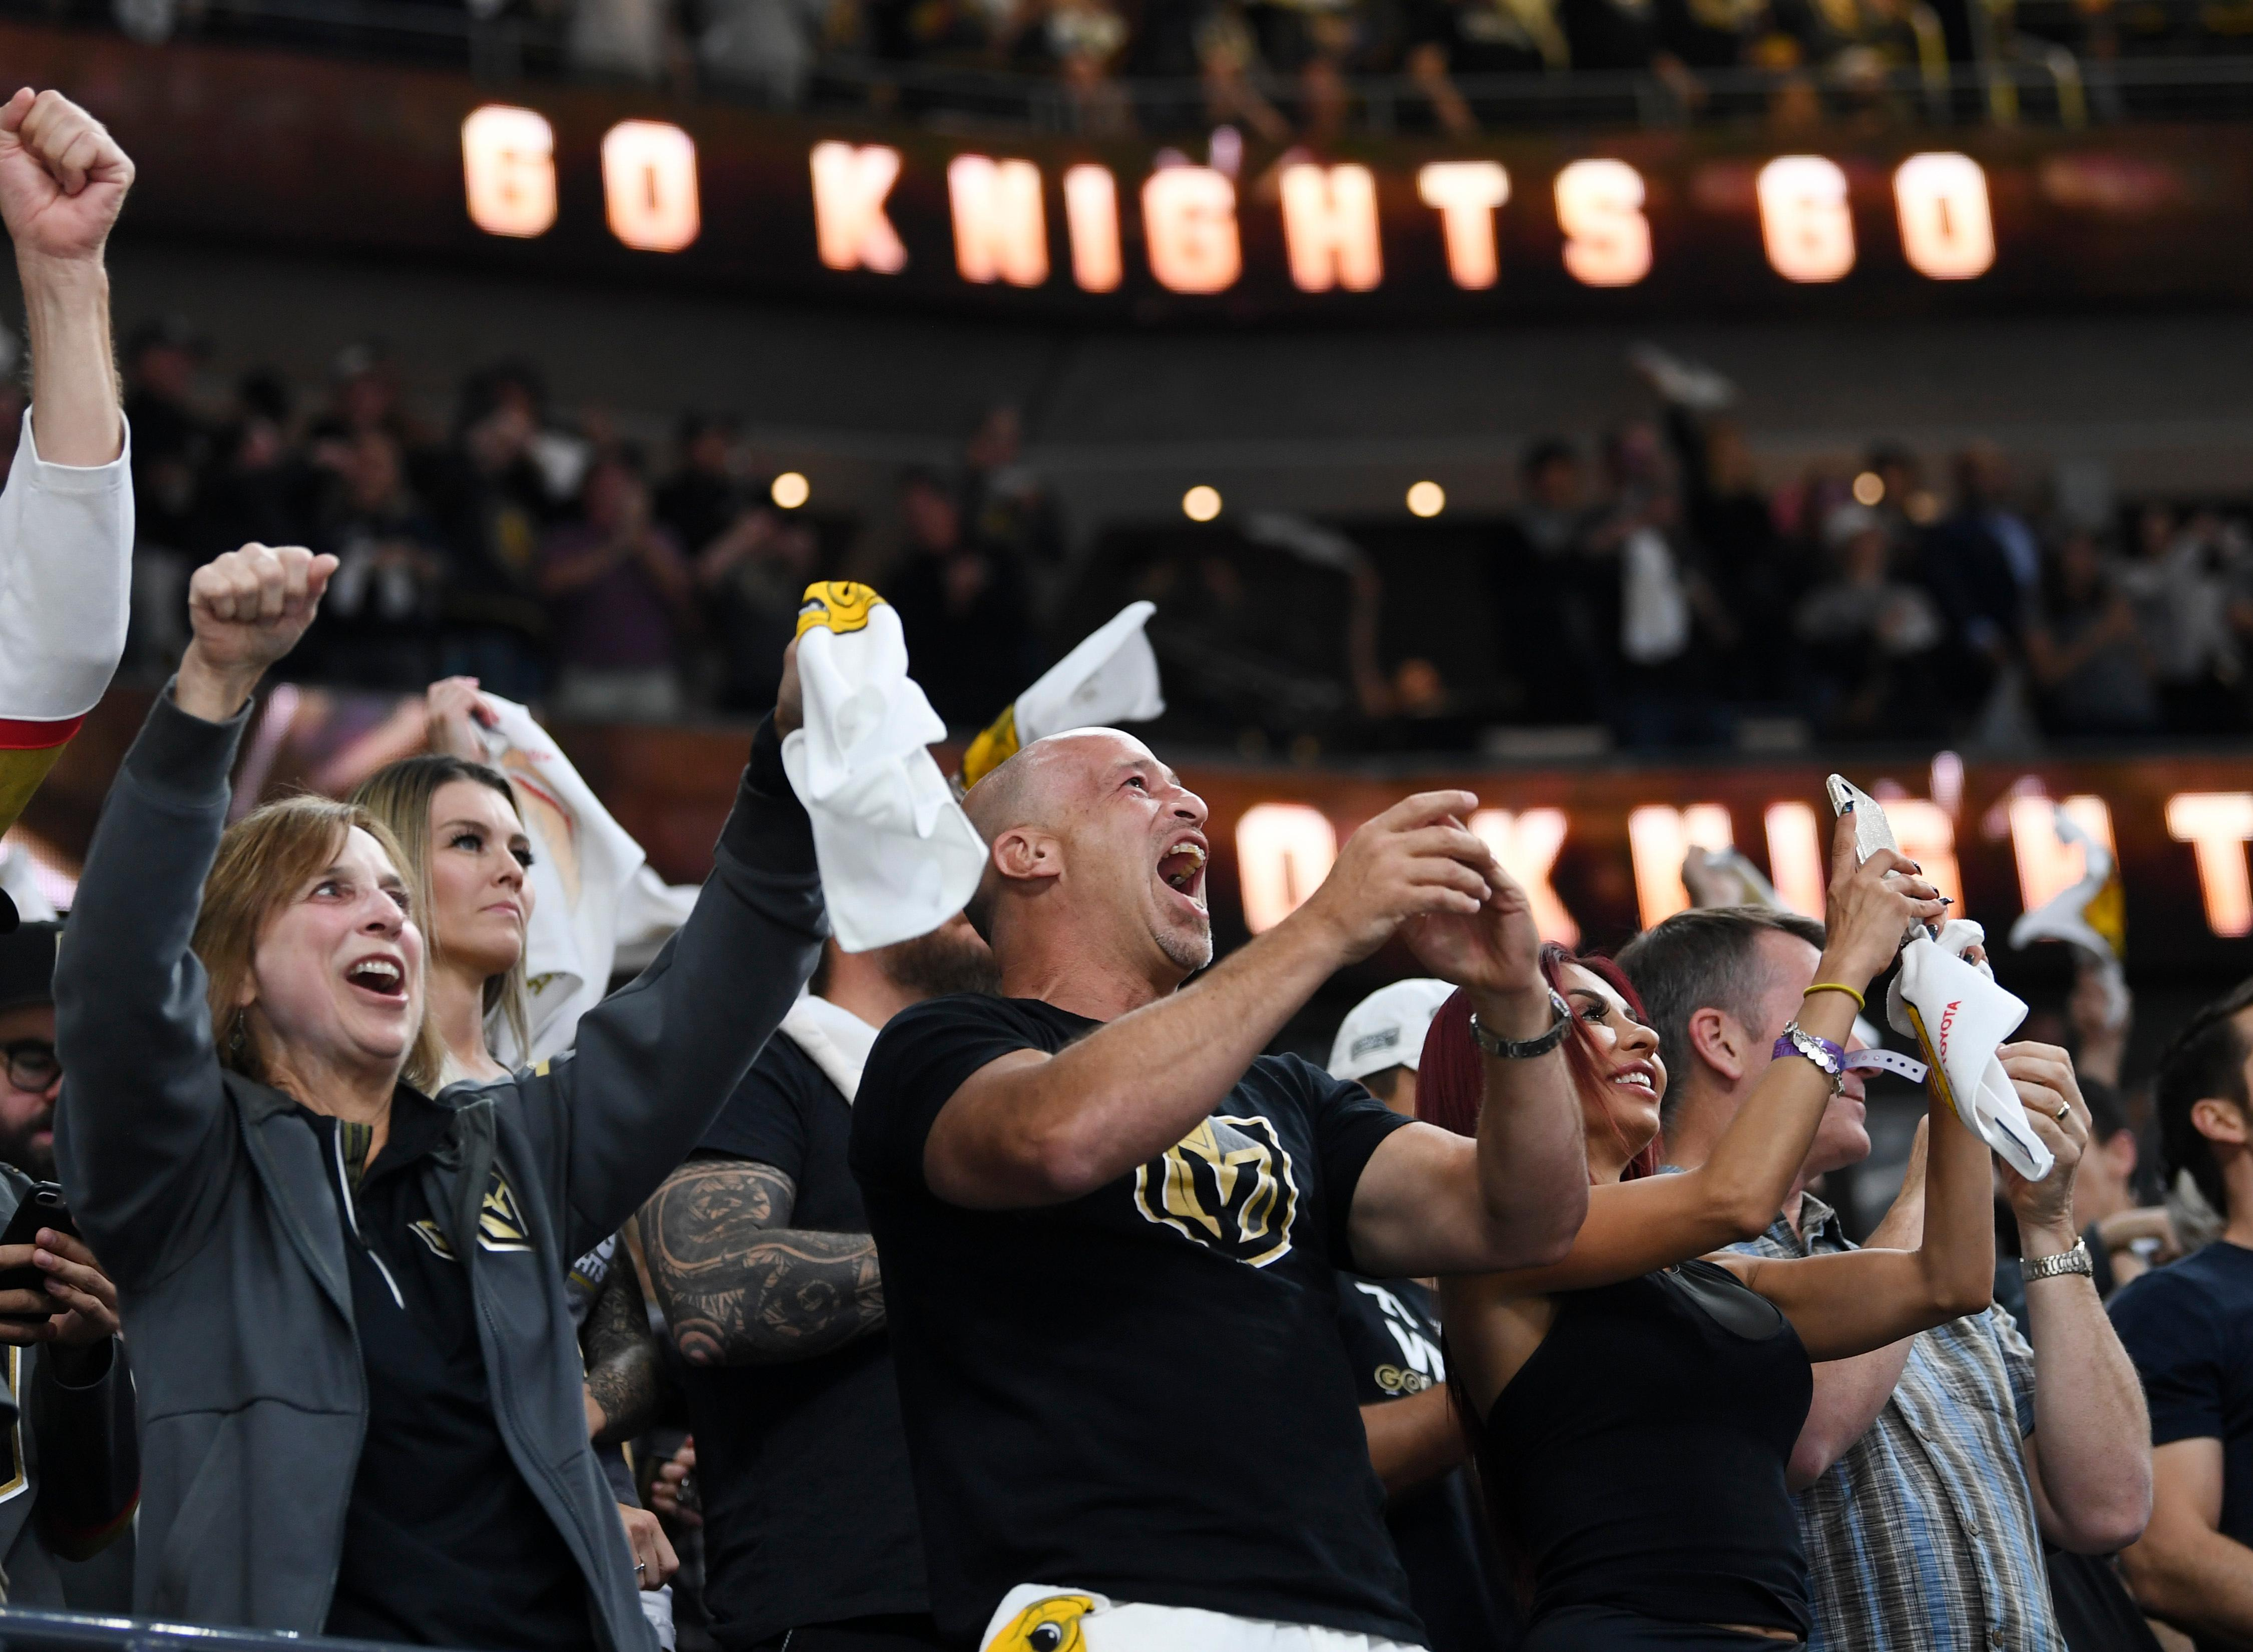 Vegas Golden Knights fans cheer after scoring in the first minute against the Winnipeg Jets during Game 3 of their NHL hockey Western Conference Final game Wednesday, May 16, 2018, at T-Mobile Arena. CREDIT: Sam Morris/Las Vegas News Bureau